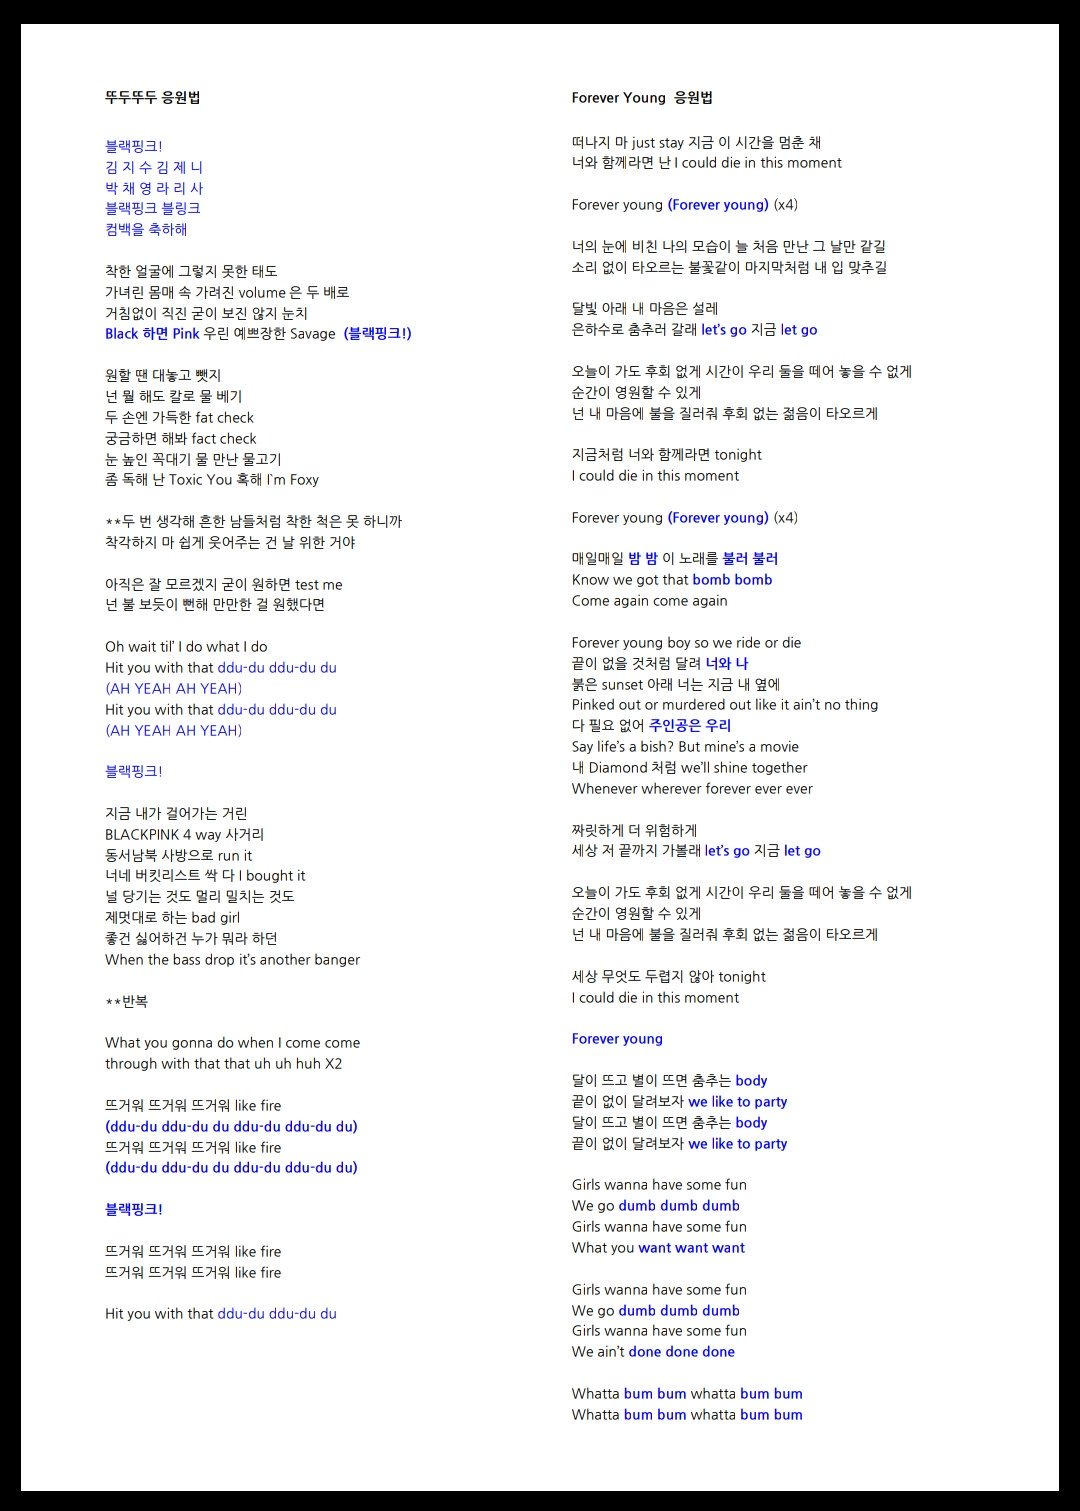 Yuki On Twitter The Fanchant Is Here The Beginning Part Of Dddd Blackpink Kim Jisoo Kim Jennie Park Chaeyoung Lalisa Blackpink Blink Congrats On Your Comeback Blue Fanchants Https T Co Bzwpnct3ni